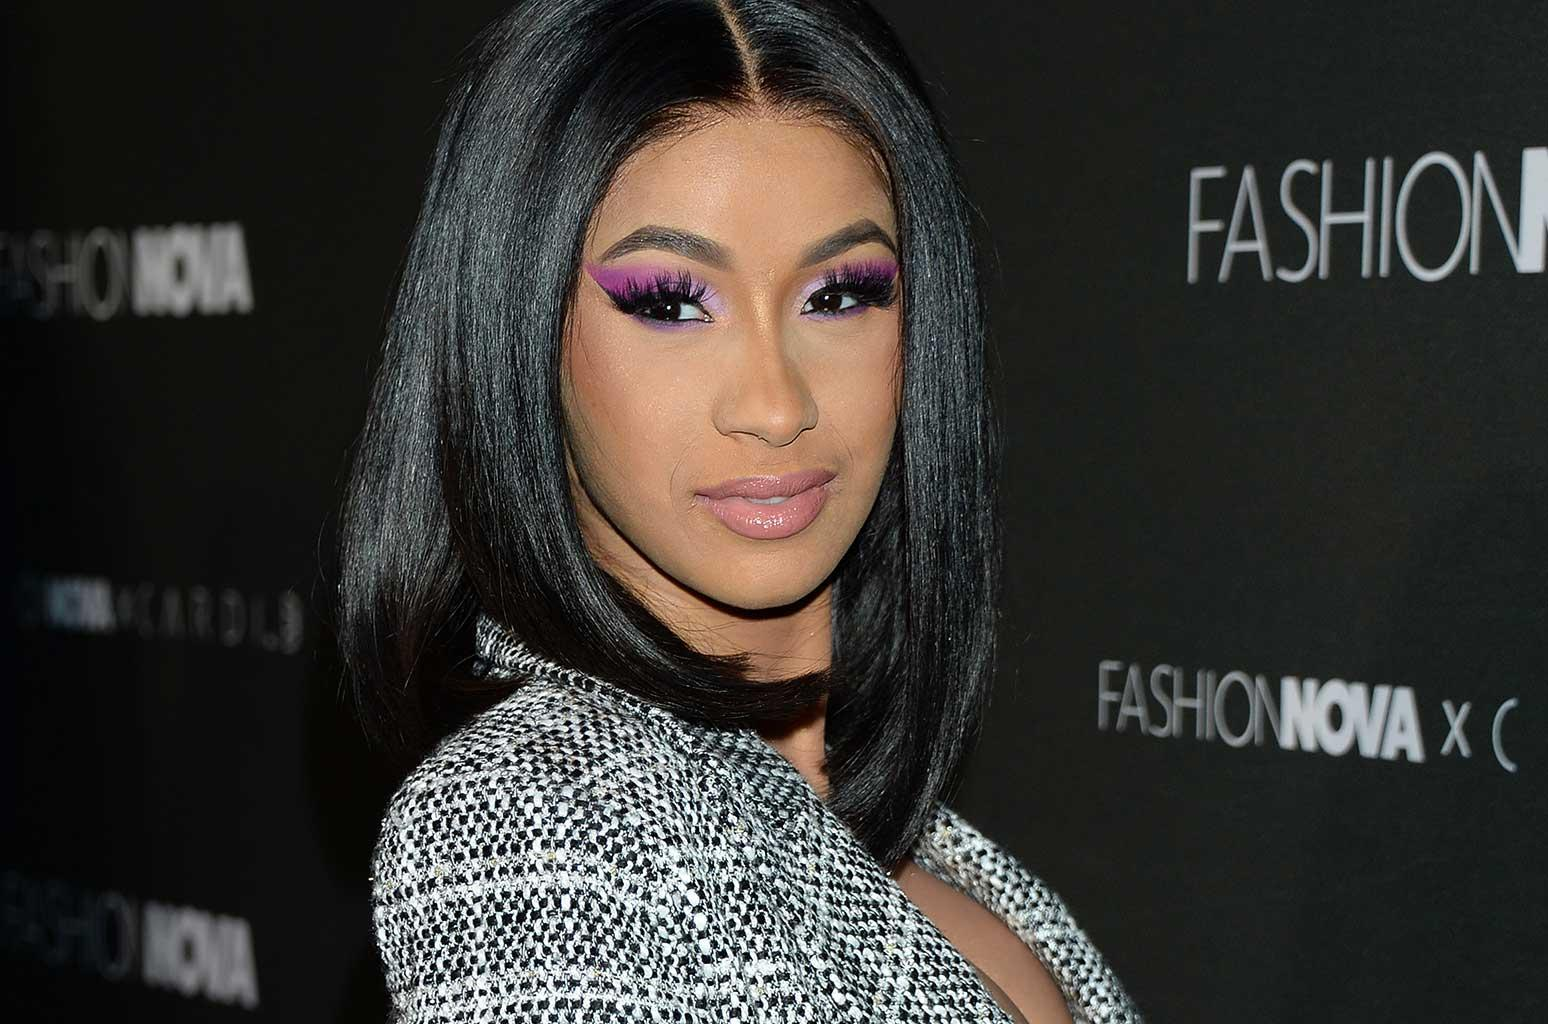 Cardi B - Here's Why She Needs Extra 'Time To Relax And Heal' After Going Under The Knife